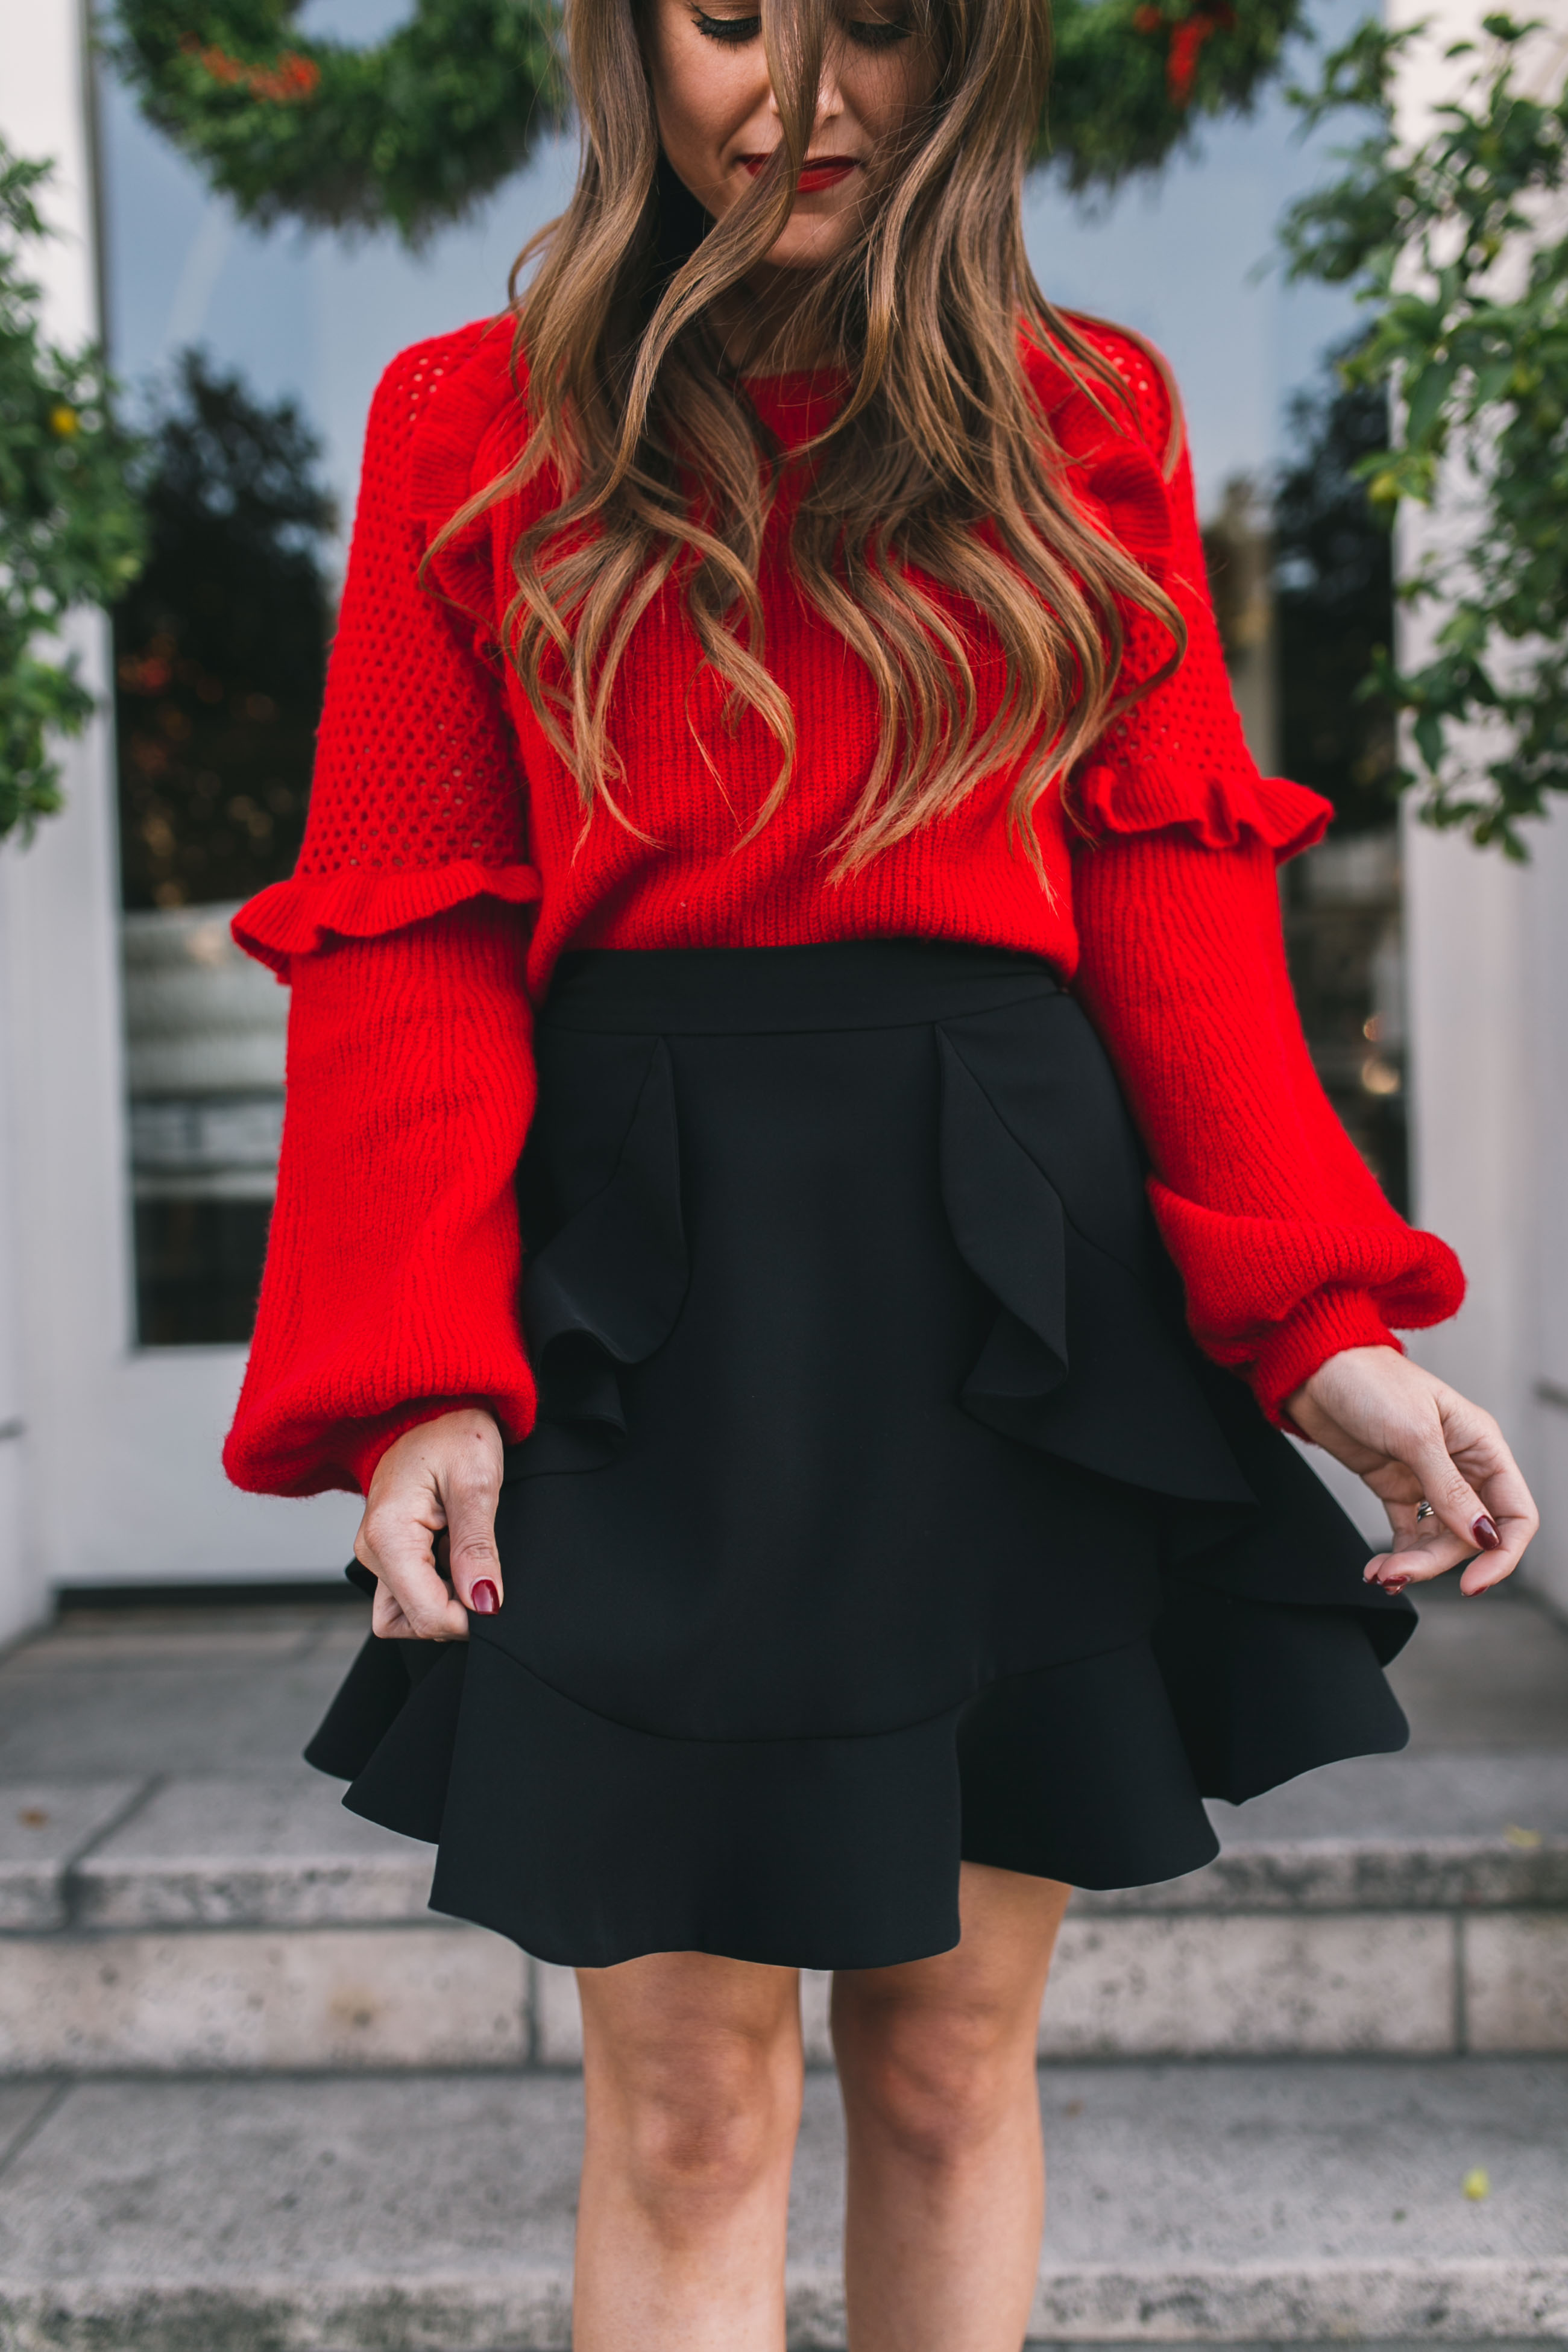 586faa02281 Fashion blogger Daryl-Ann Denner shares festive red sweaters